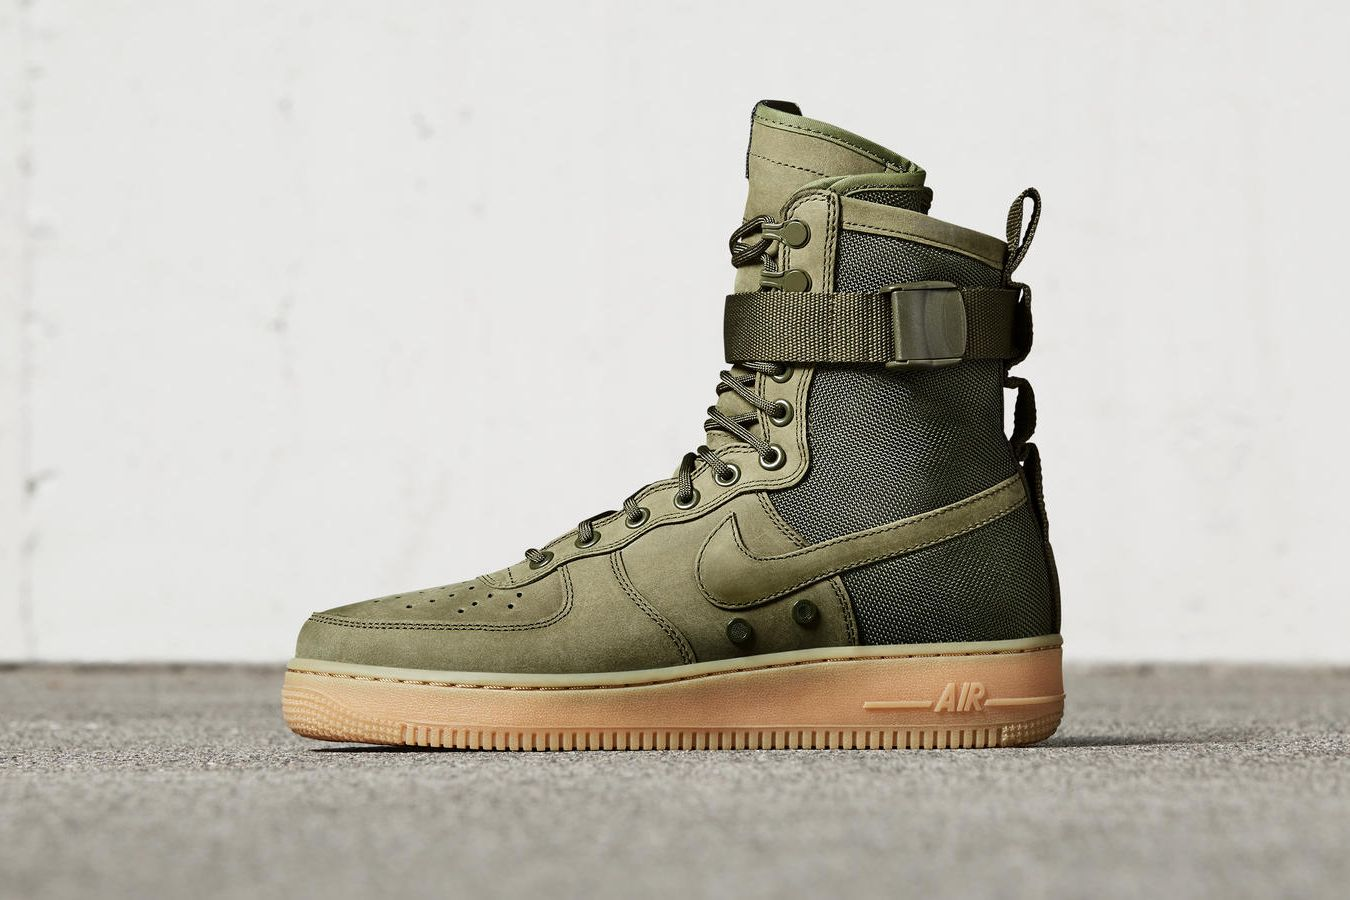 3674f77233492 The SF AF-1 is a winterized take on the iconic Air Force 1 silhouette.